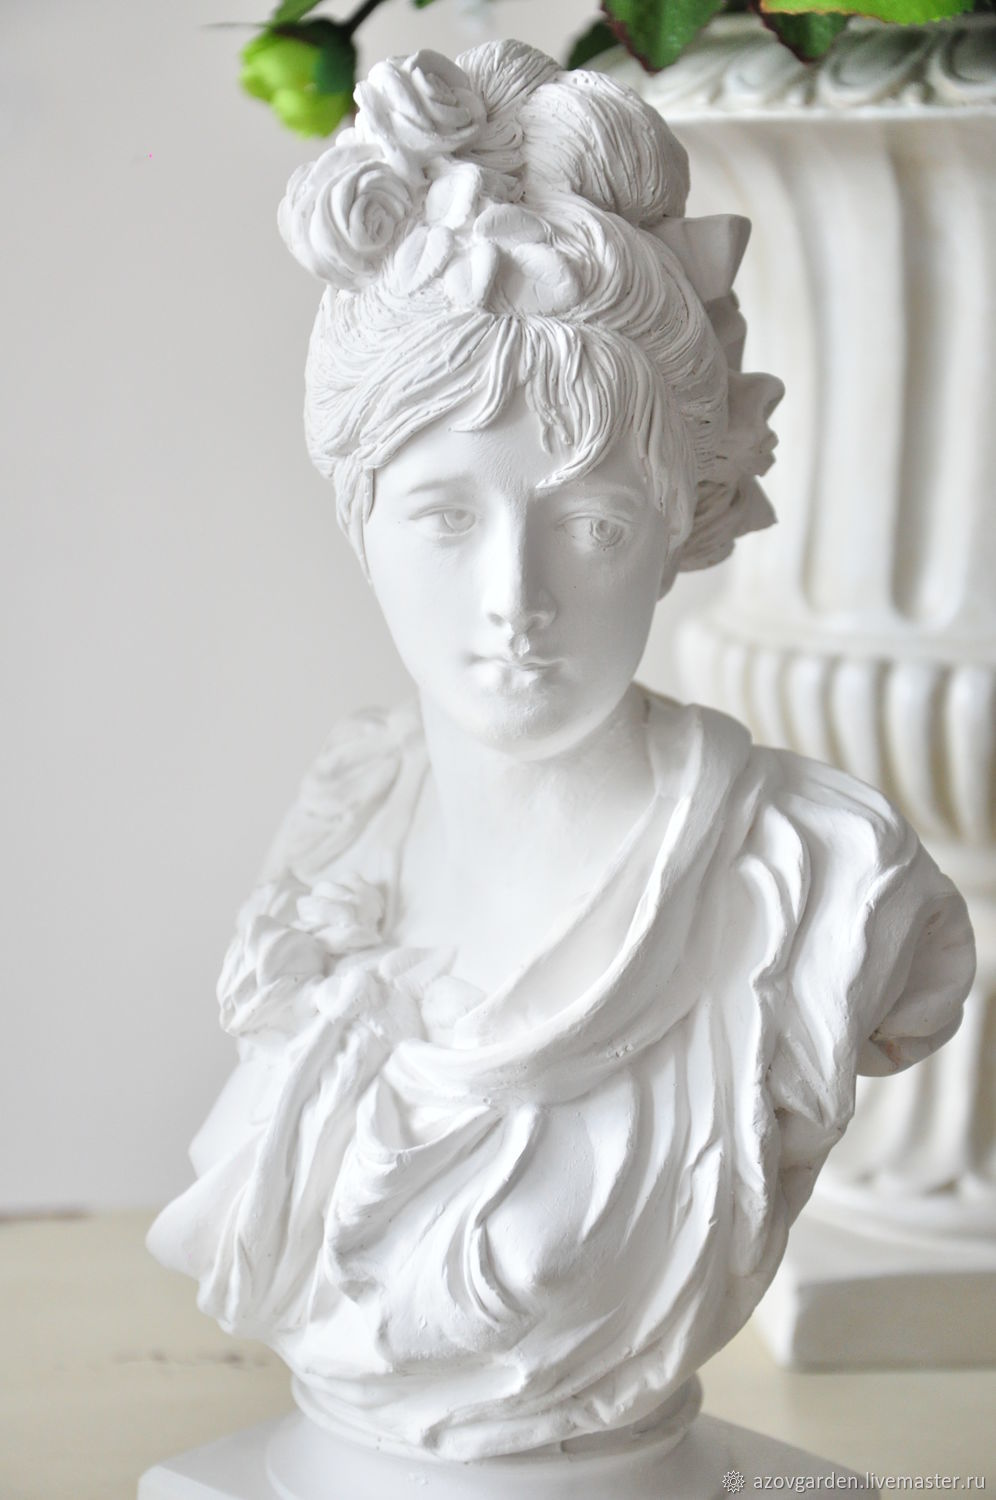 Provence Decoration Bust Girls From Gypsum For Interior Decoration The Provence Classic Shop Online On Livemaster With Shipping